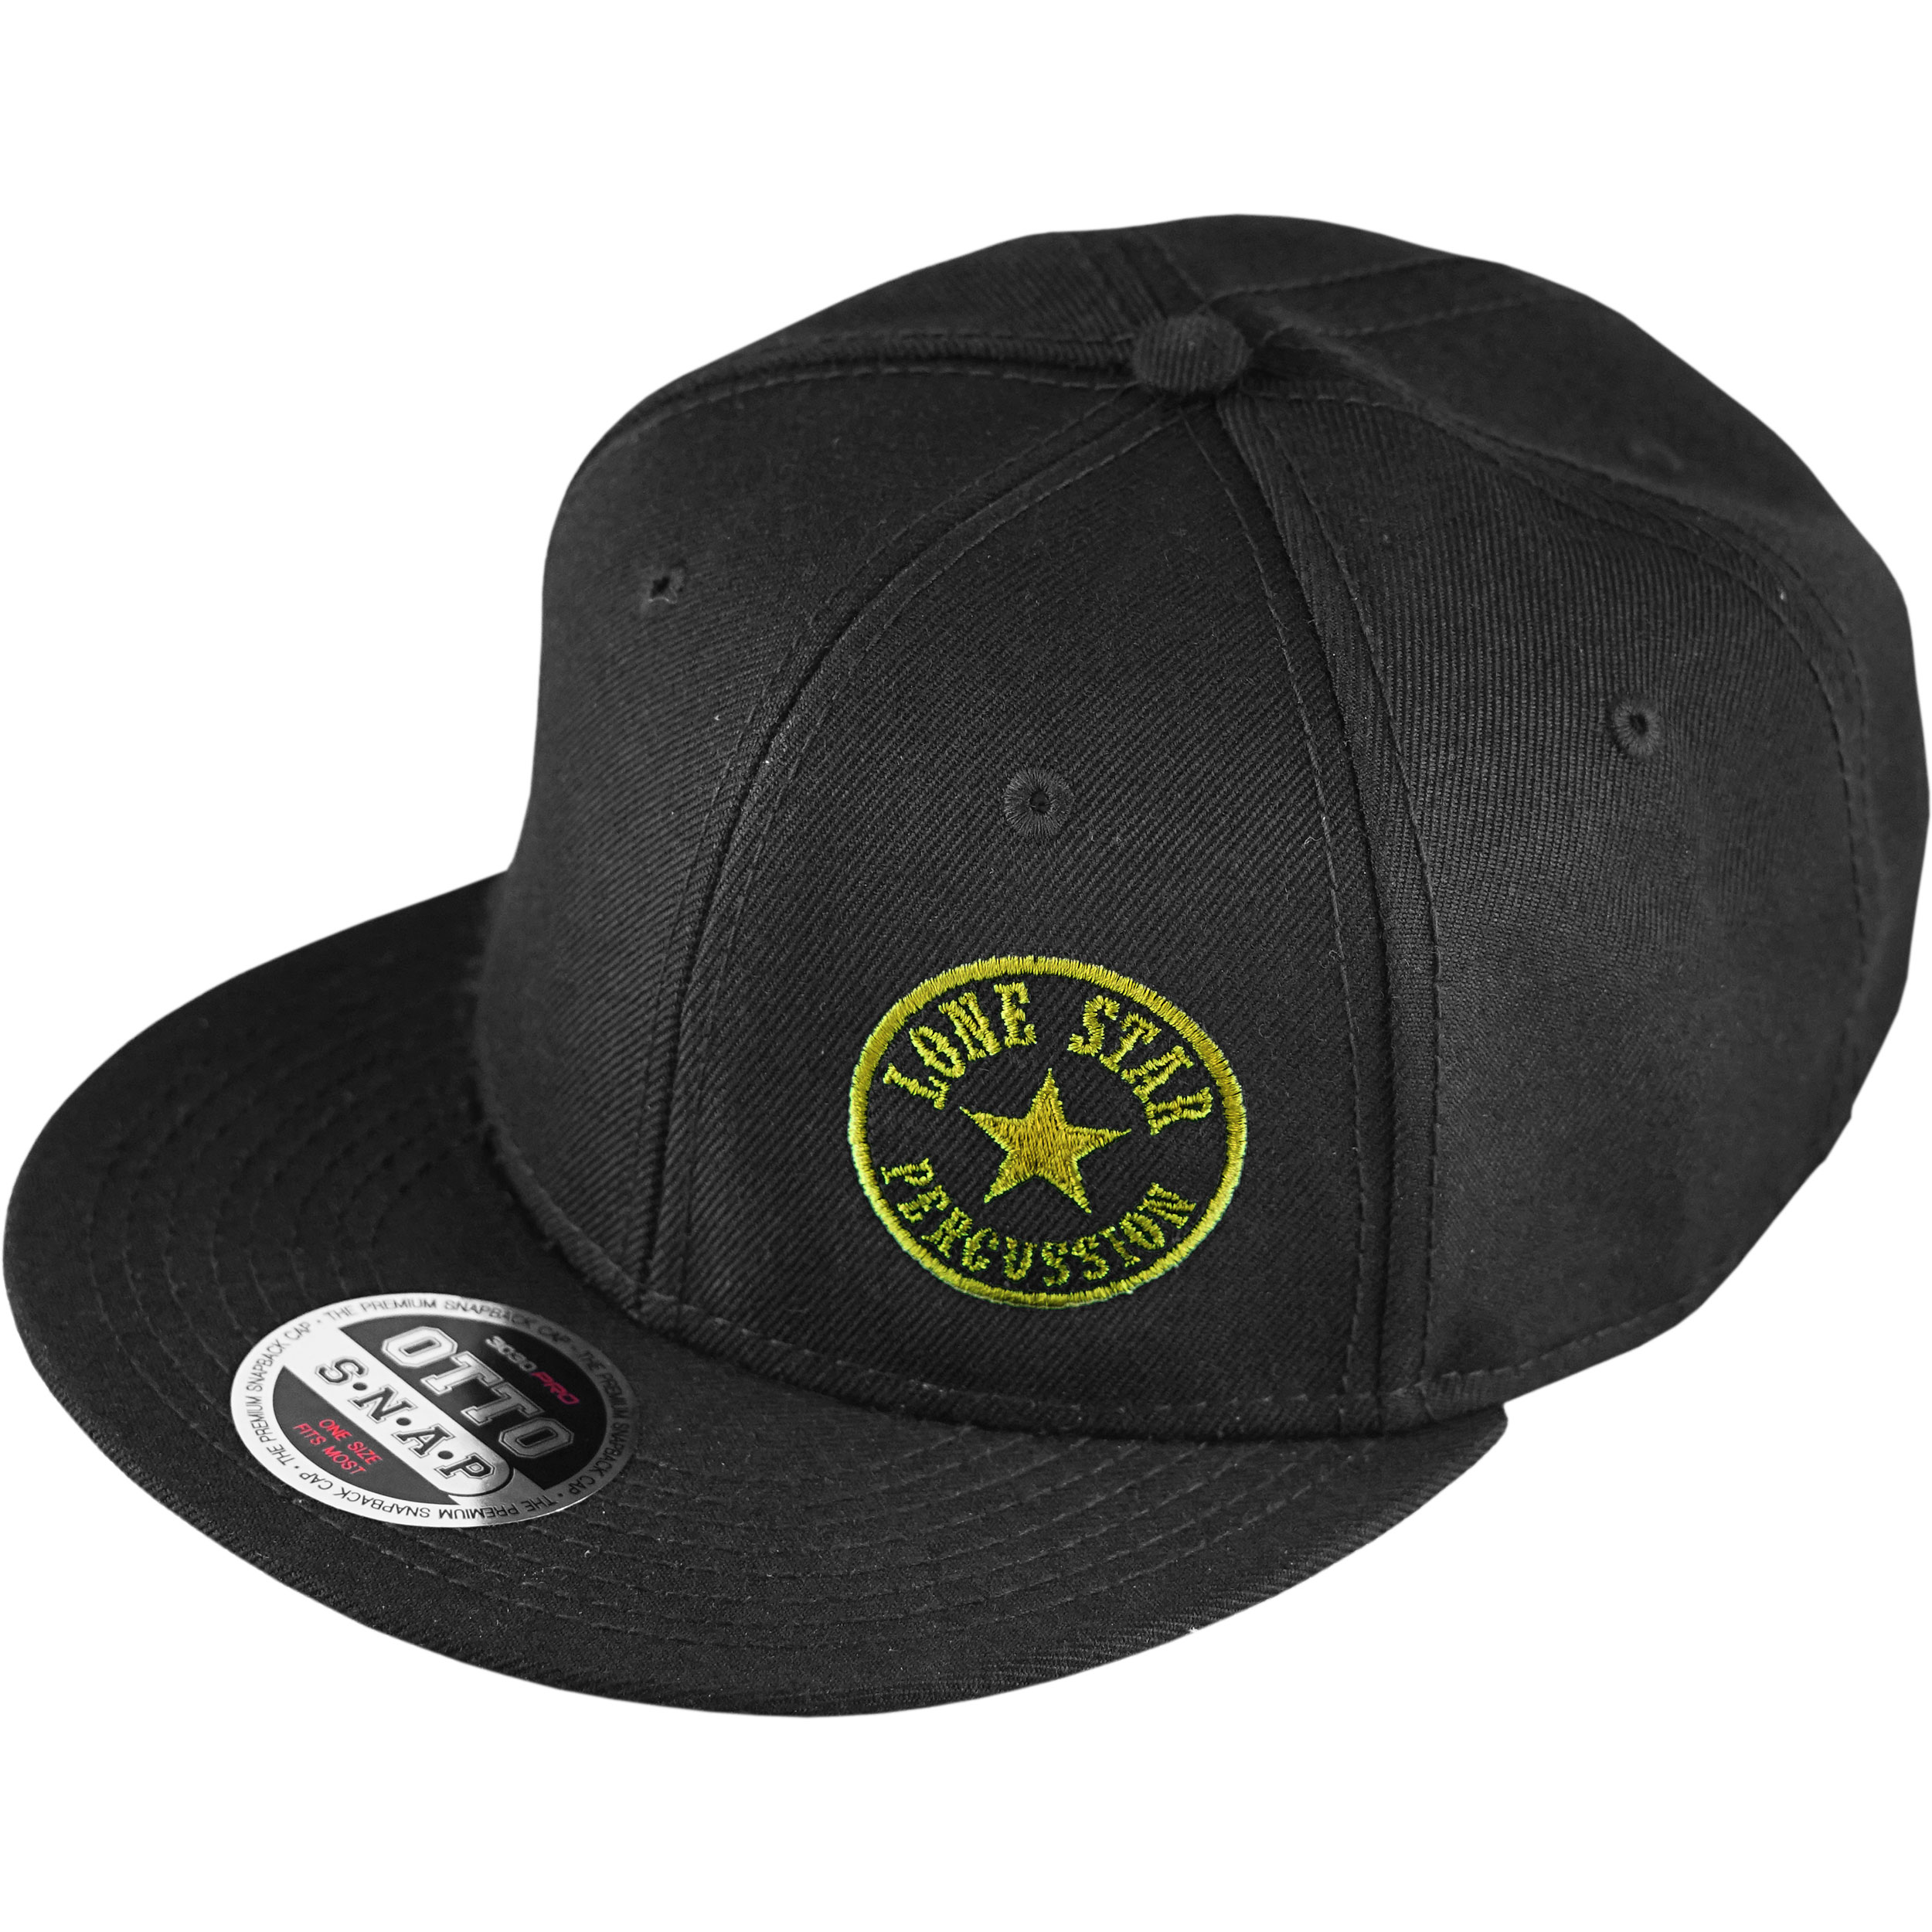 Lone Star Percussion Limited Edition Black and Yellow Snapback Baseball Cap